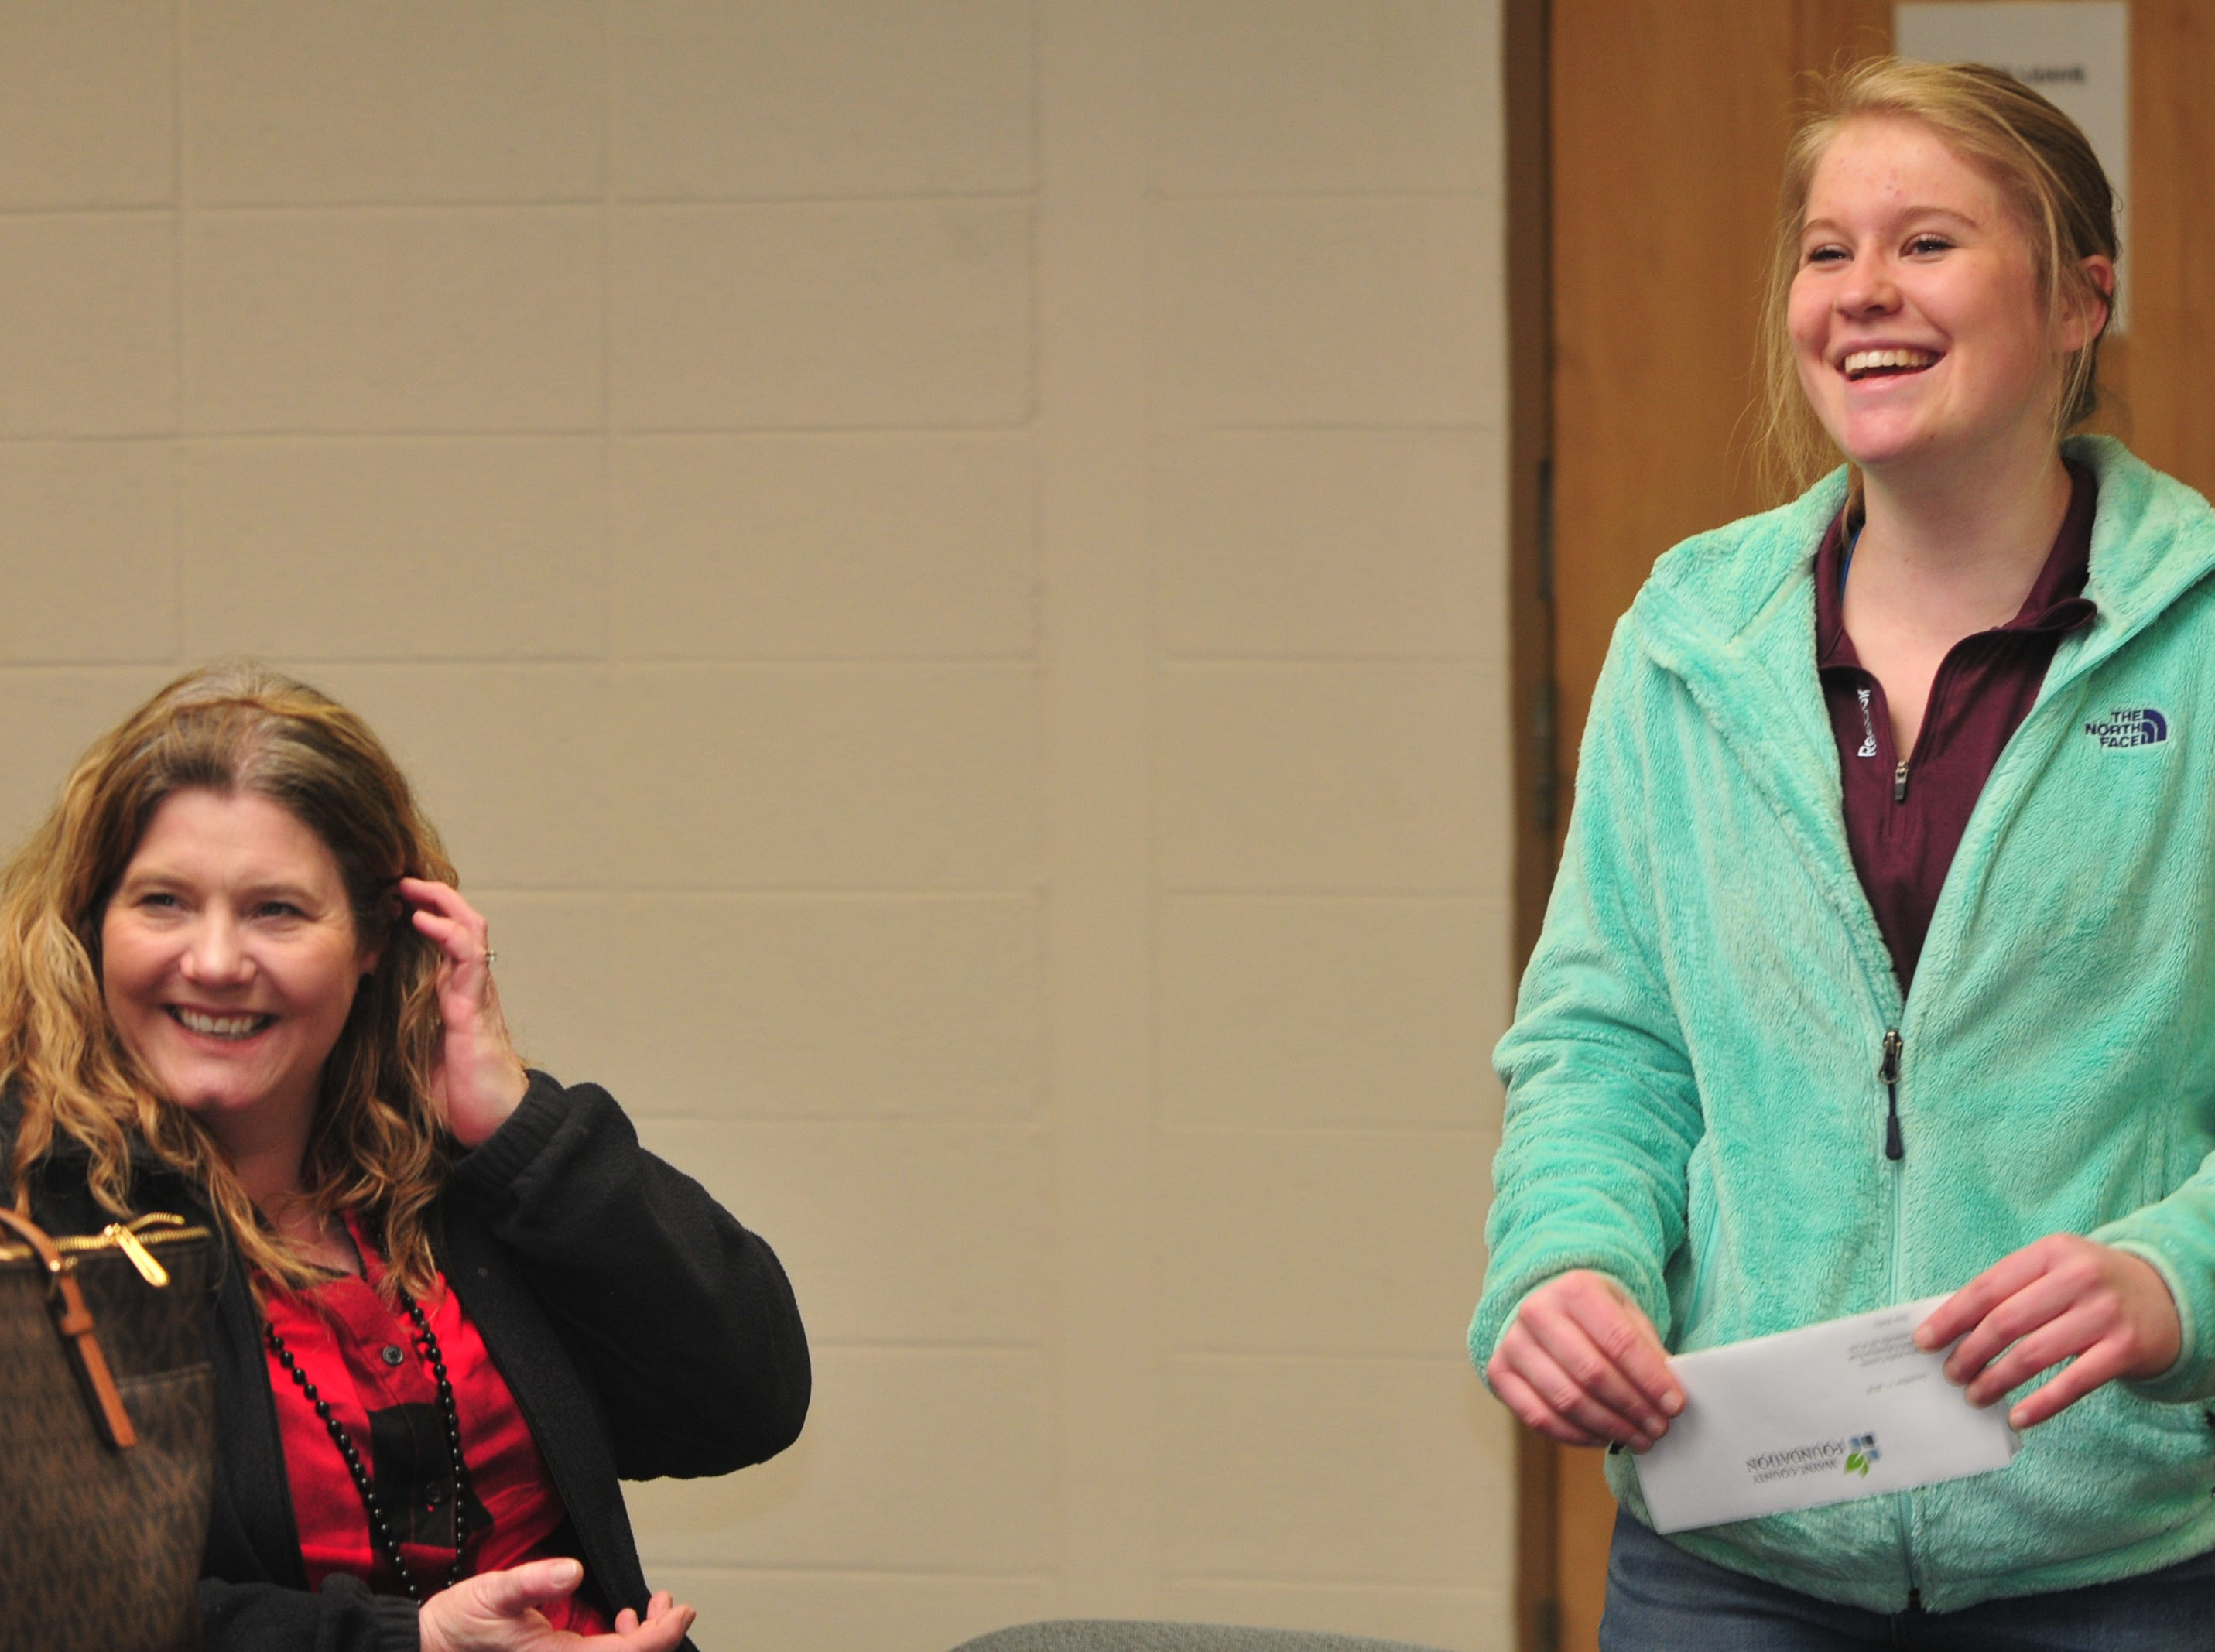 Centerville High School senior Molly Coomes, right, with mother Renee Westover after learning that Coomes is a recipient of the Wayne County Foundation's Lily Endowment Community Scholarship at Centerville High School Tuesday, Dec. 11, 2018.